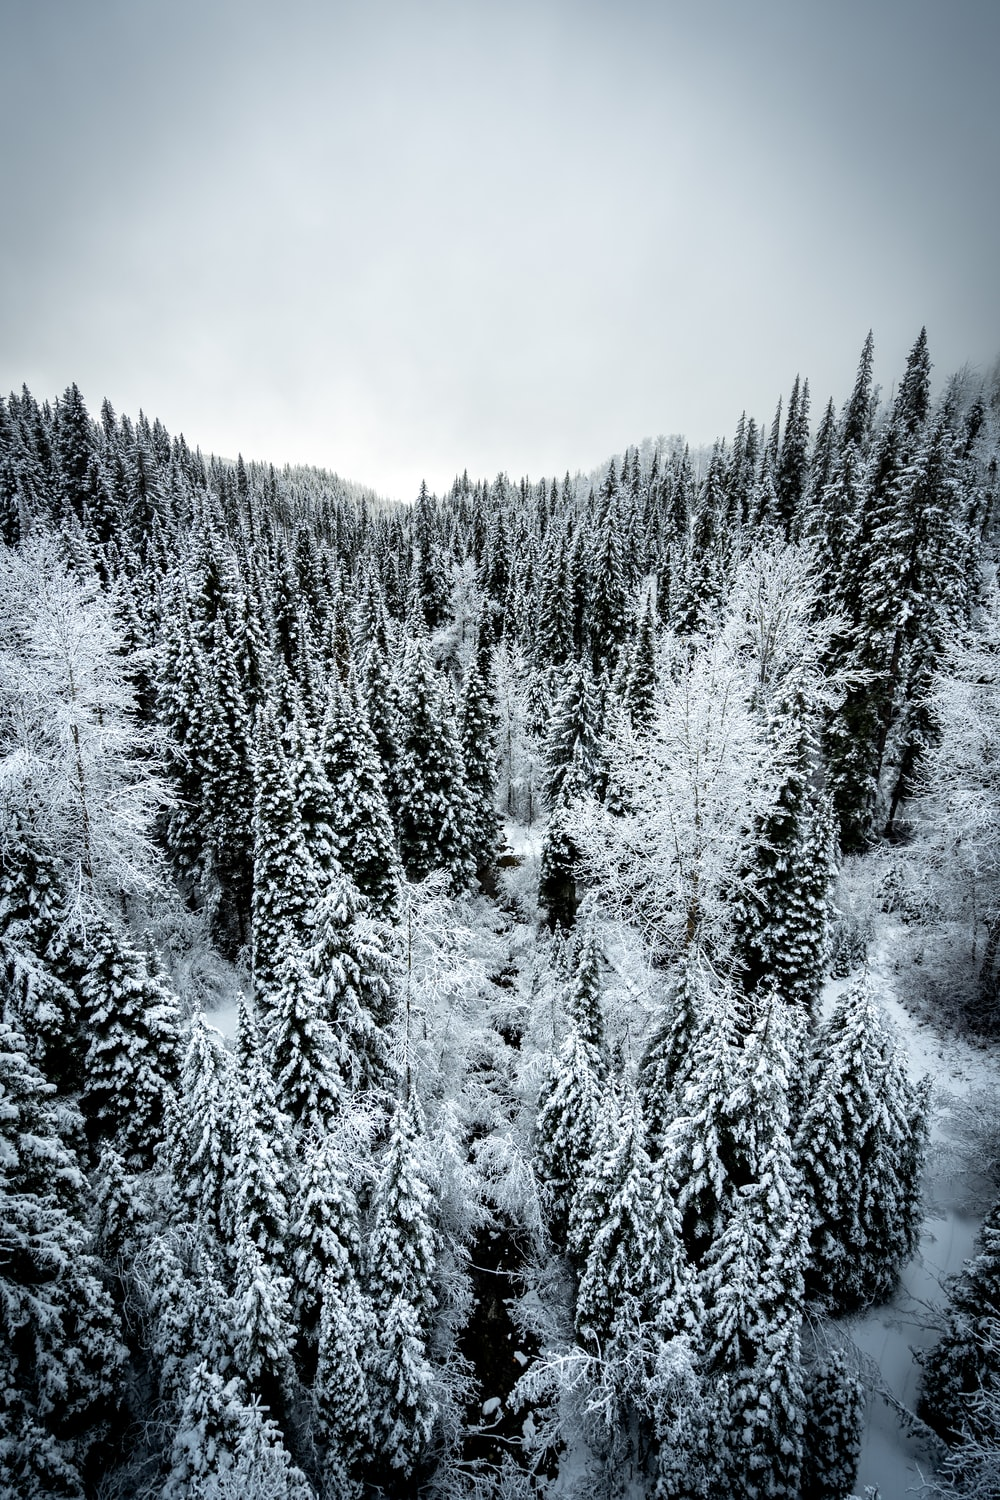 grayscale photo of pine trees covered by snow